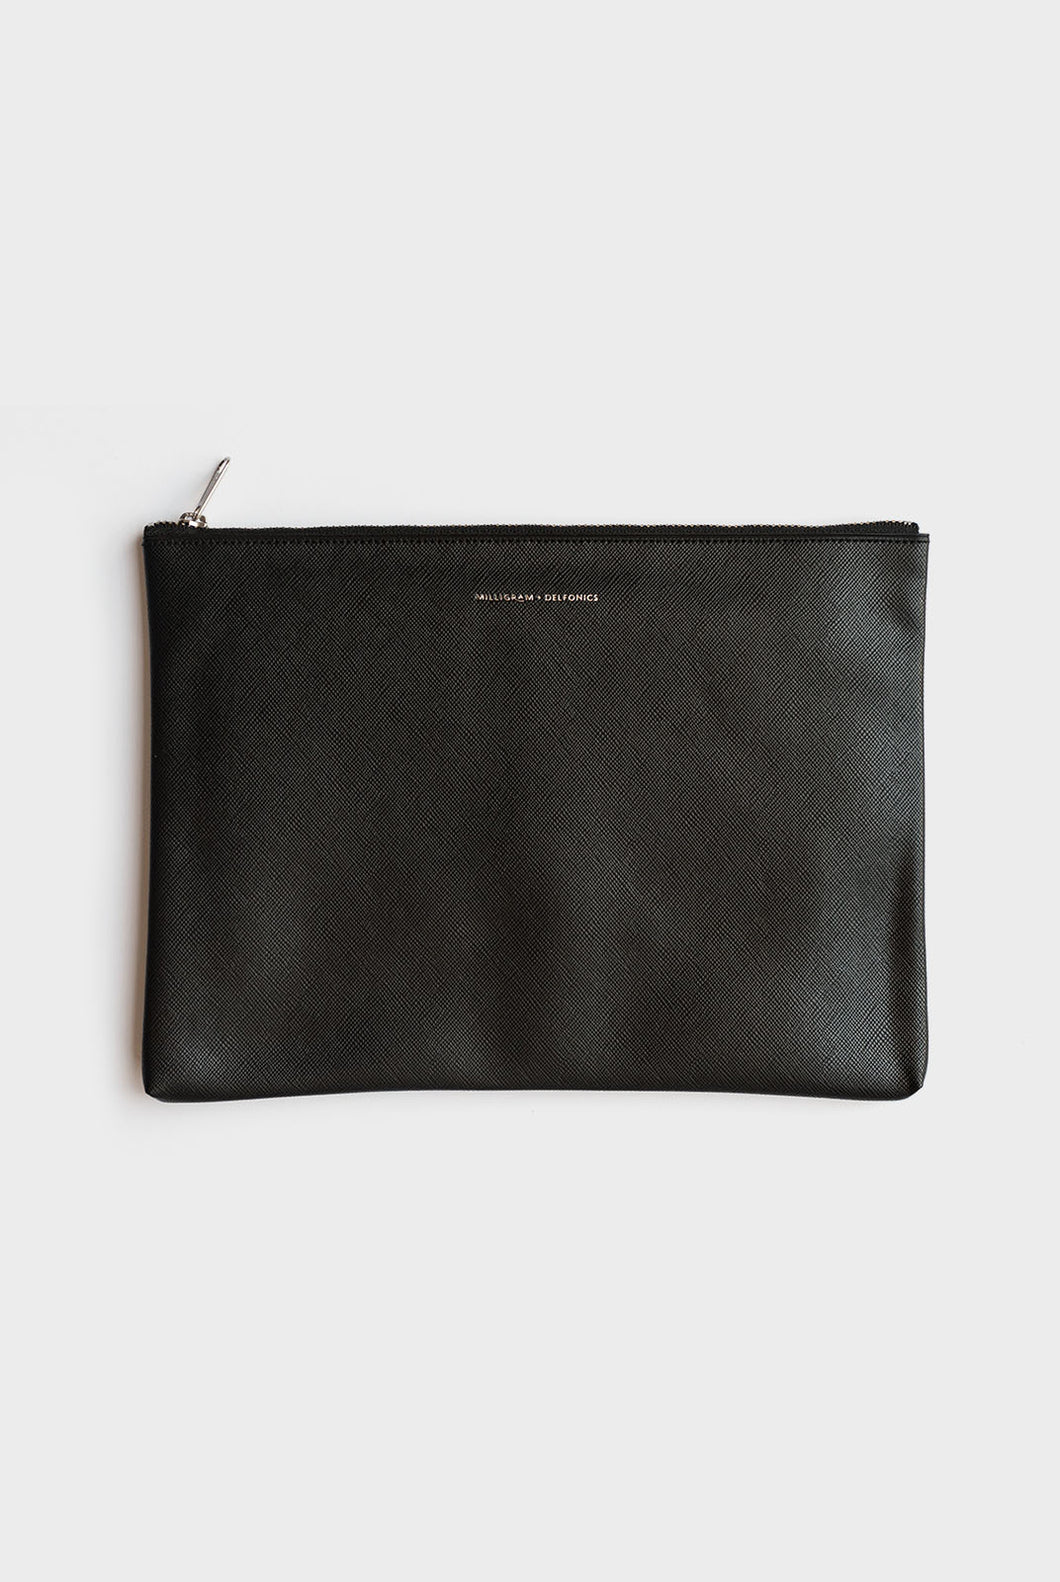 Milligram + Delfonics Collaboration - Pouch - Large (26x18cm) - Black